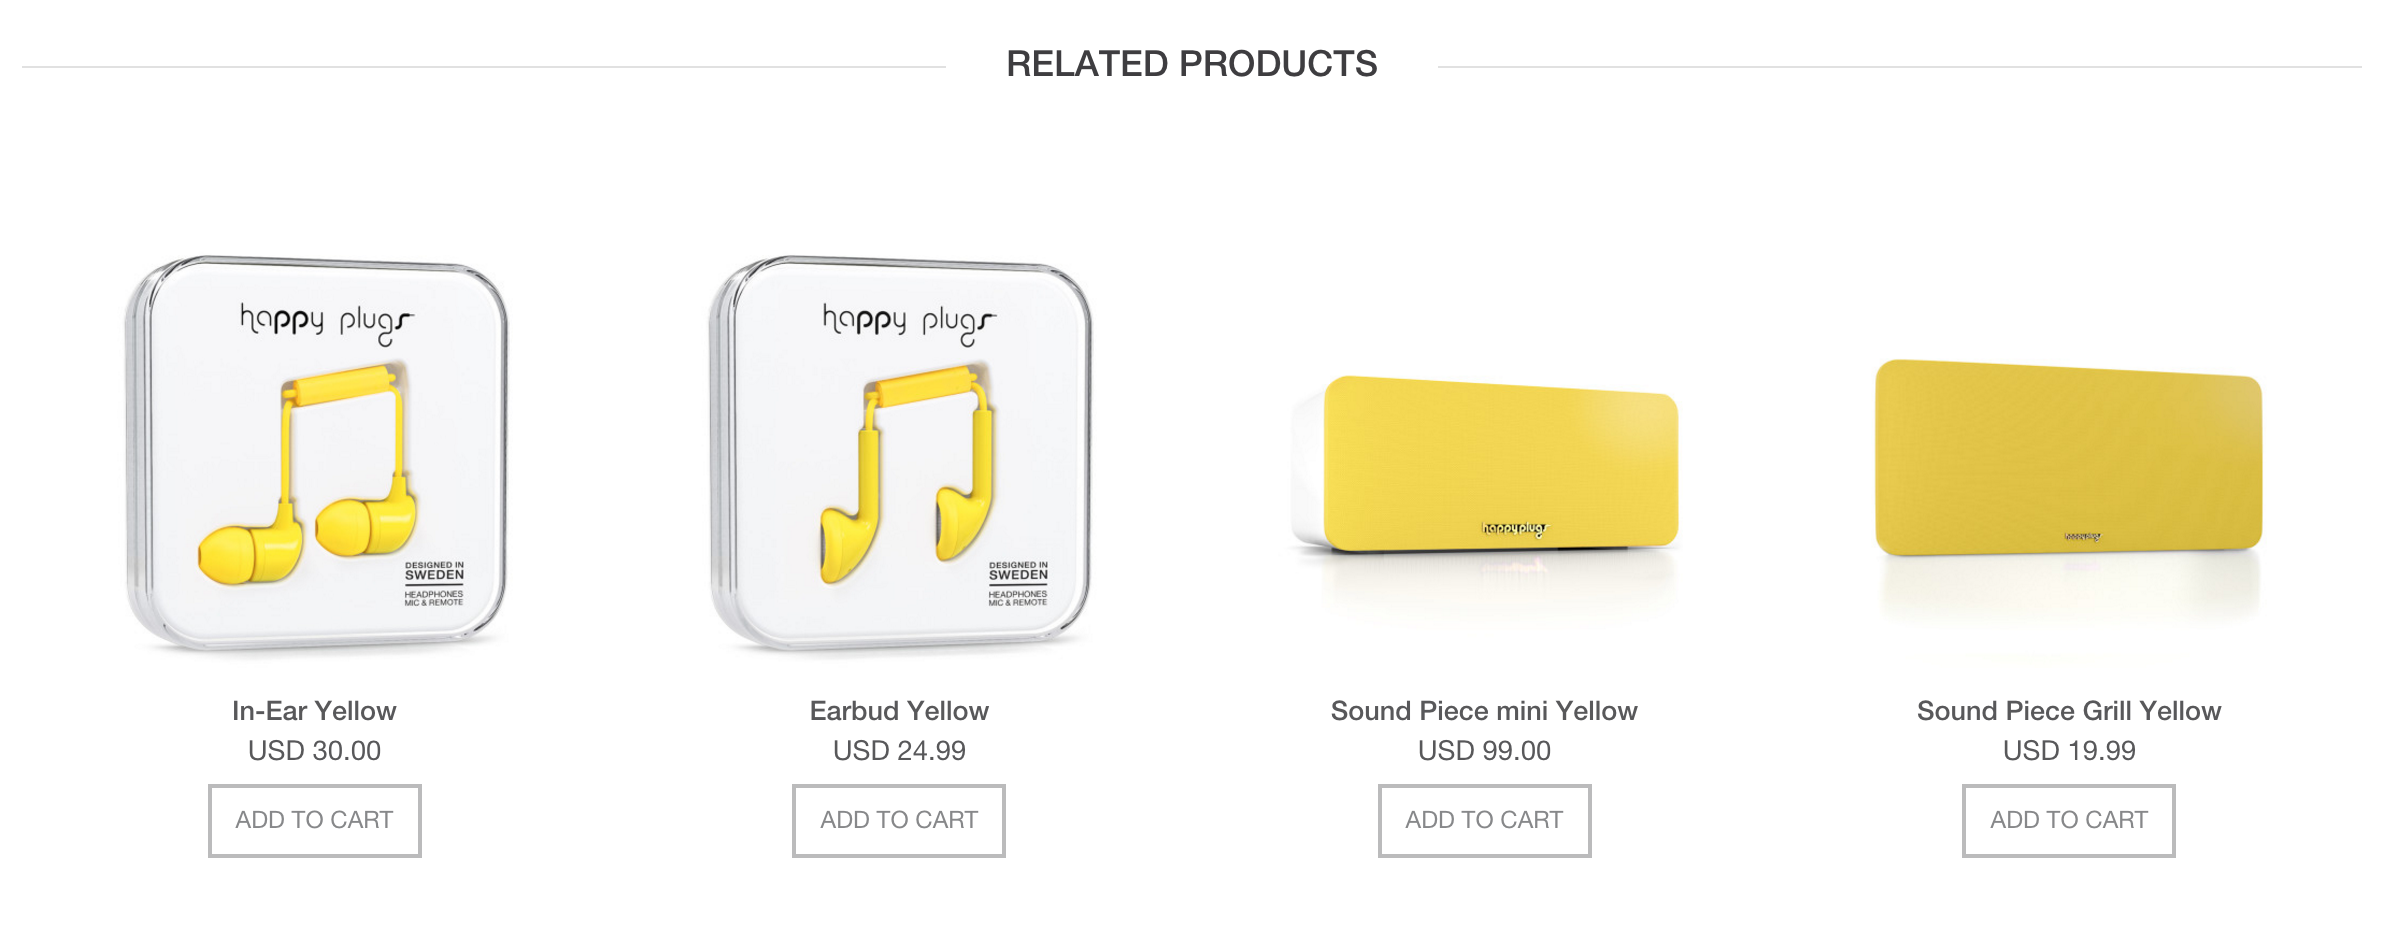 If you buy a yellow speaker, perhaps you'll also like some yellow earbuds.